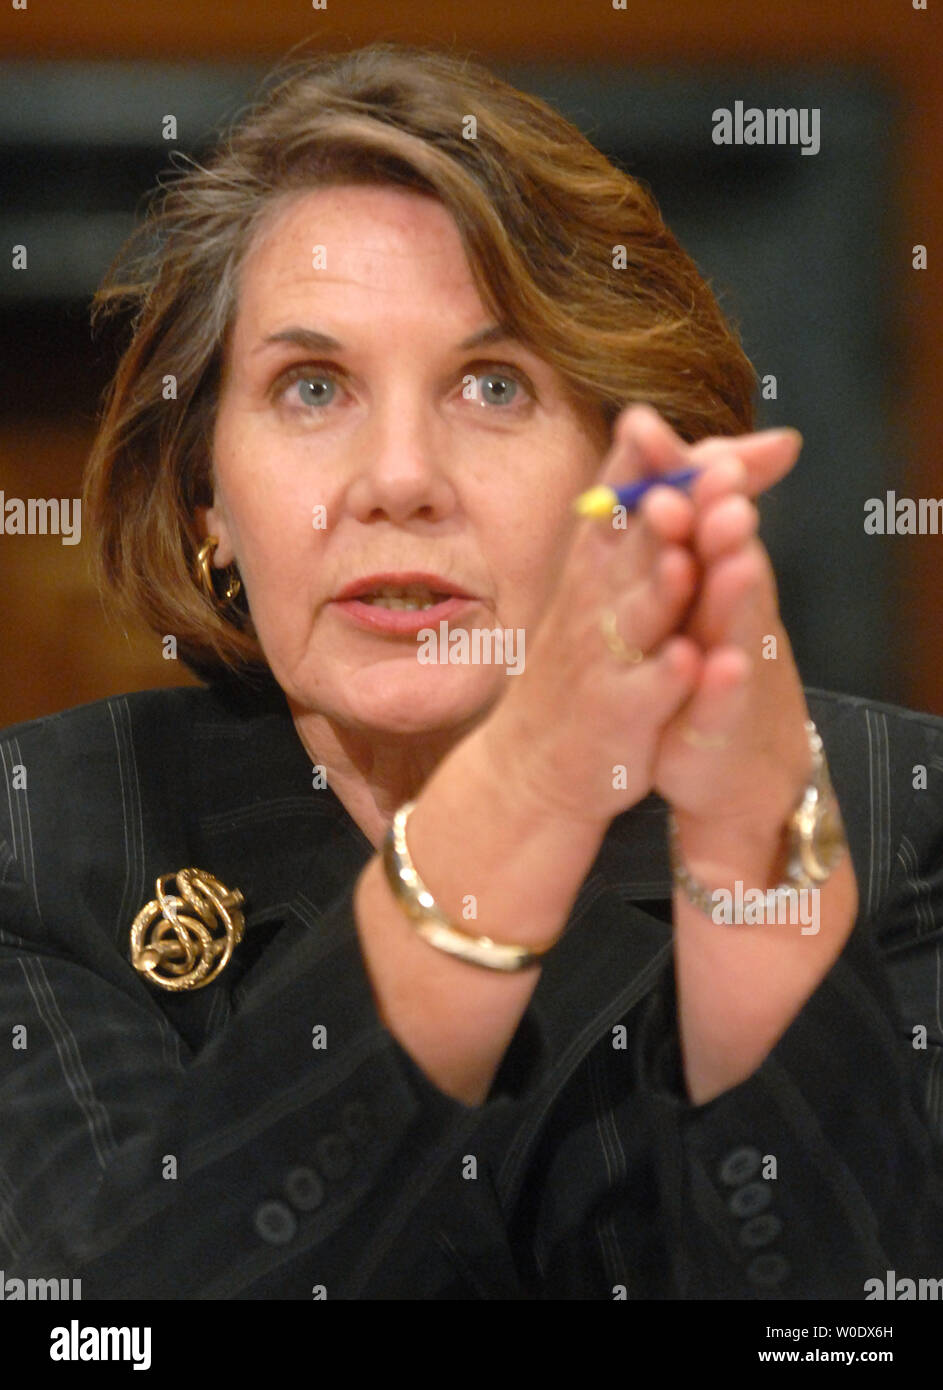 Nancy Nord, acting Chairman of the Consumer Product Safety Commission, testifies before a Senate Finance Services and General Government Subcommittee hearing on toy safety standards in Washington on September 12, 2007. (UPI Photo/Kevin Dietsch) Stock Photo